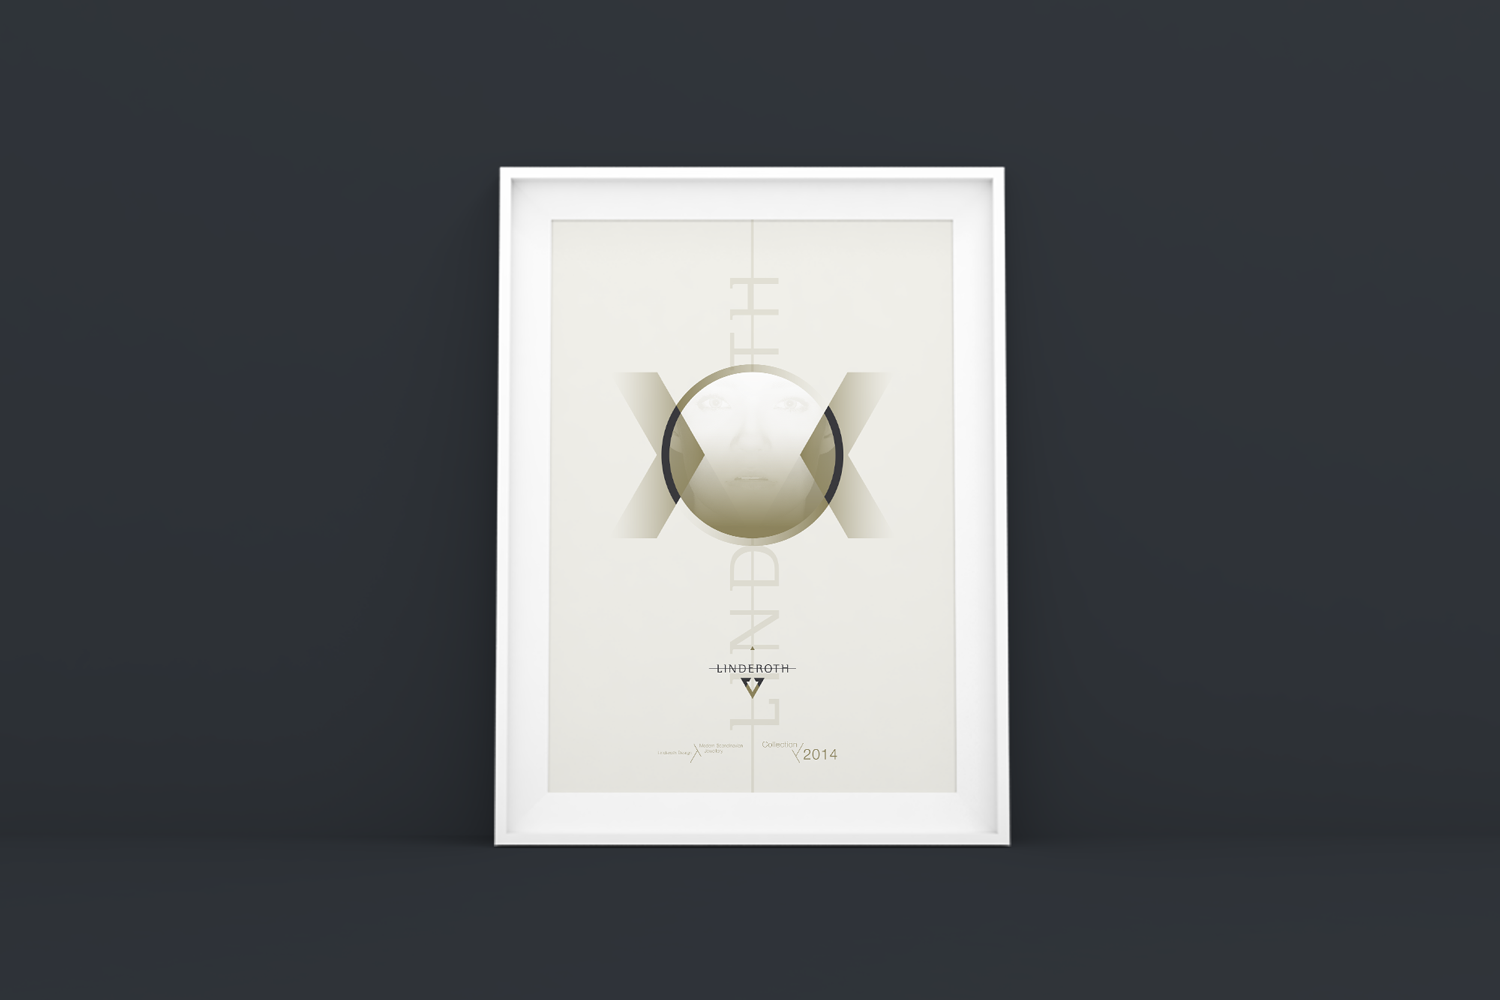 Poster design for Linderoth Jewellery - light version.